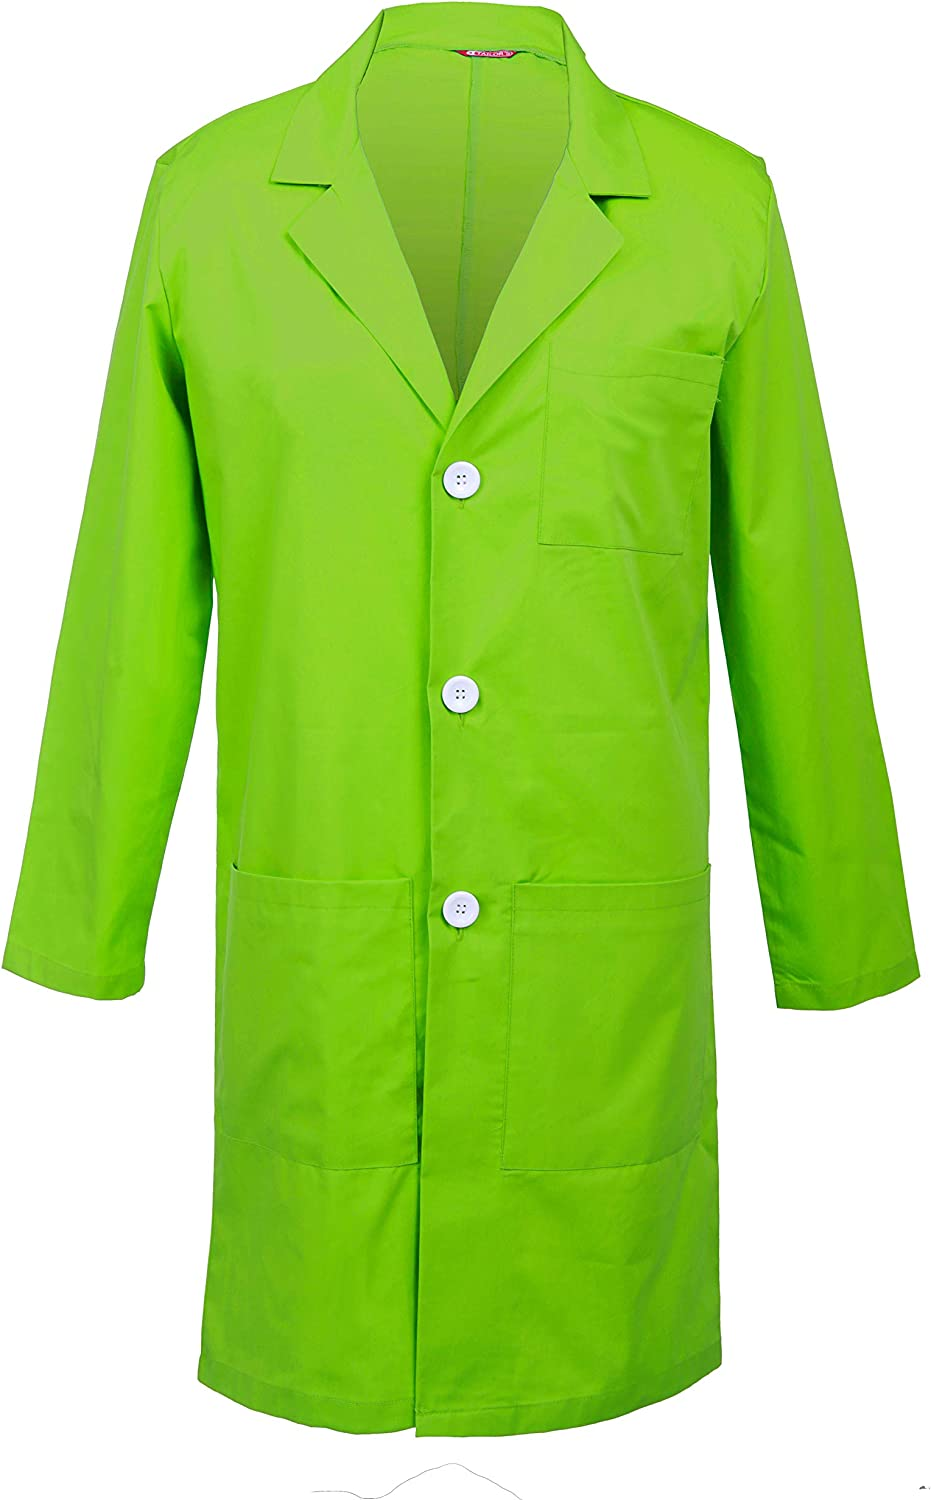 Max 46% OFF TAILOR'S Men's Directly managed store Lab Coat